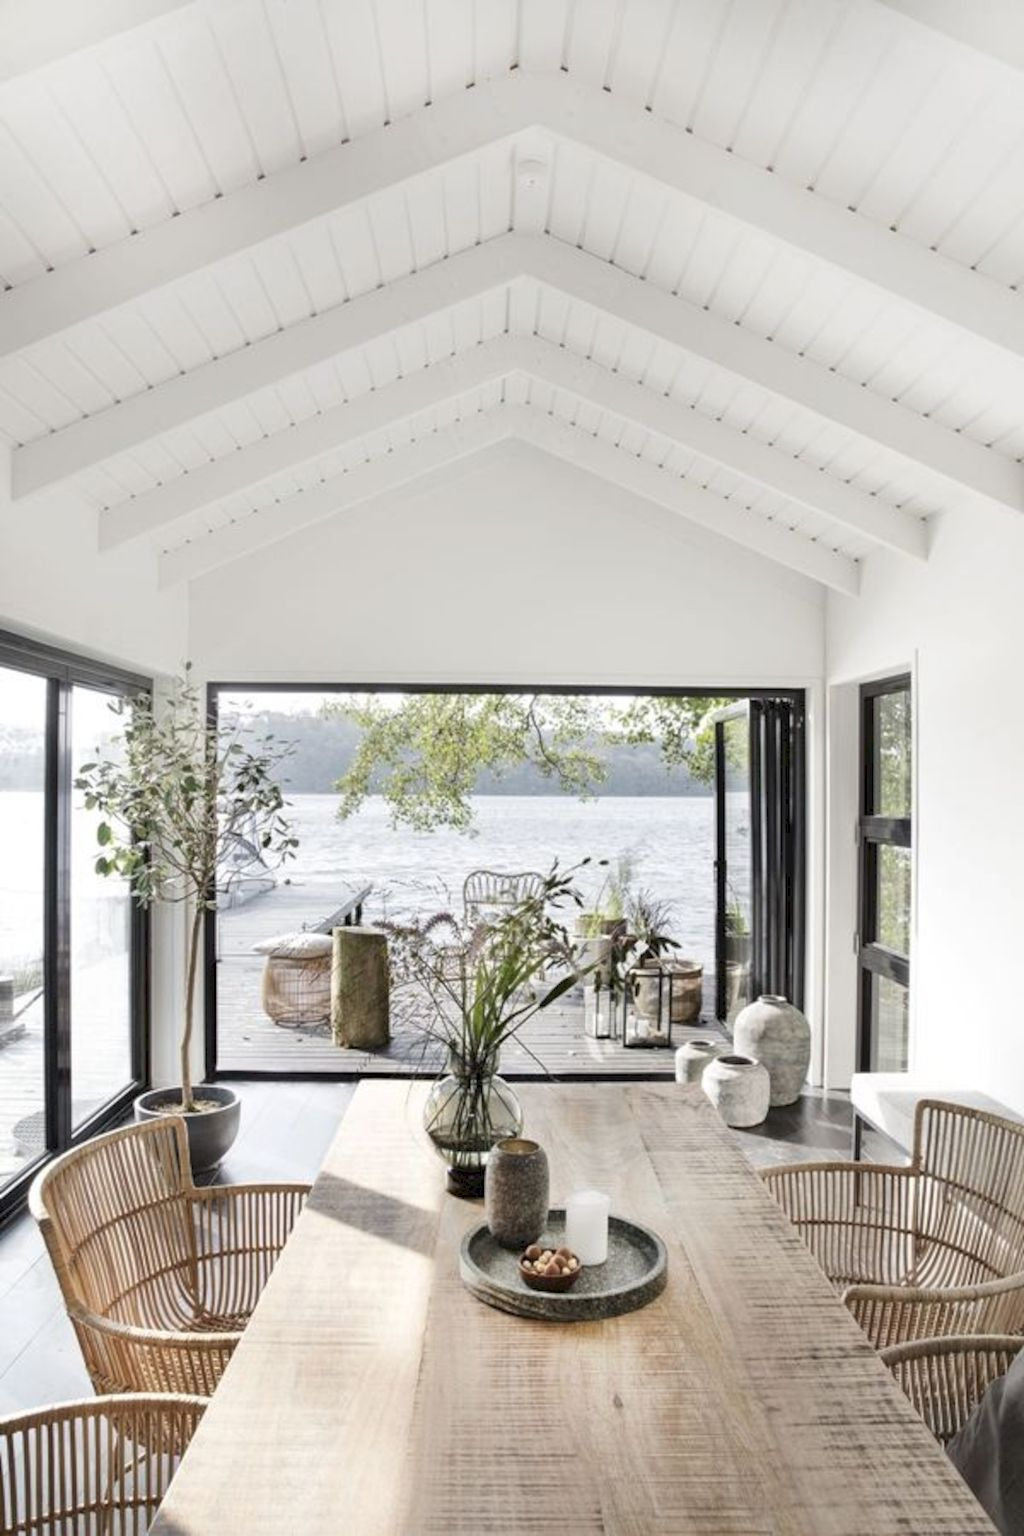 Beach home dining room style giving a fresh vibe among inviting recreational interior update Image 3